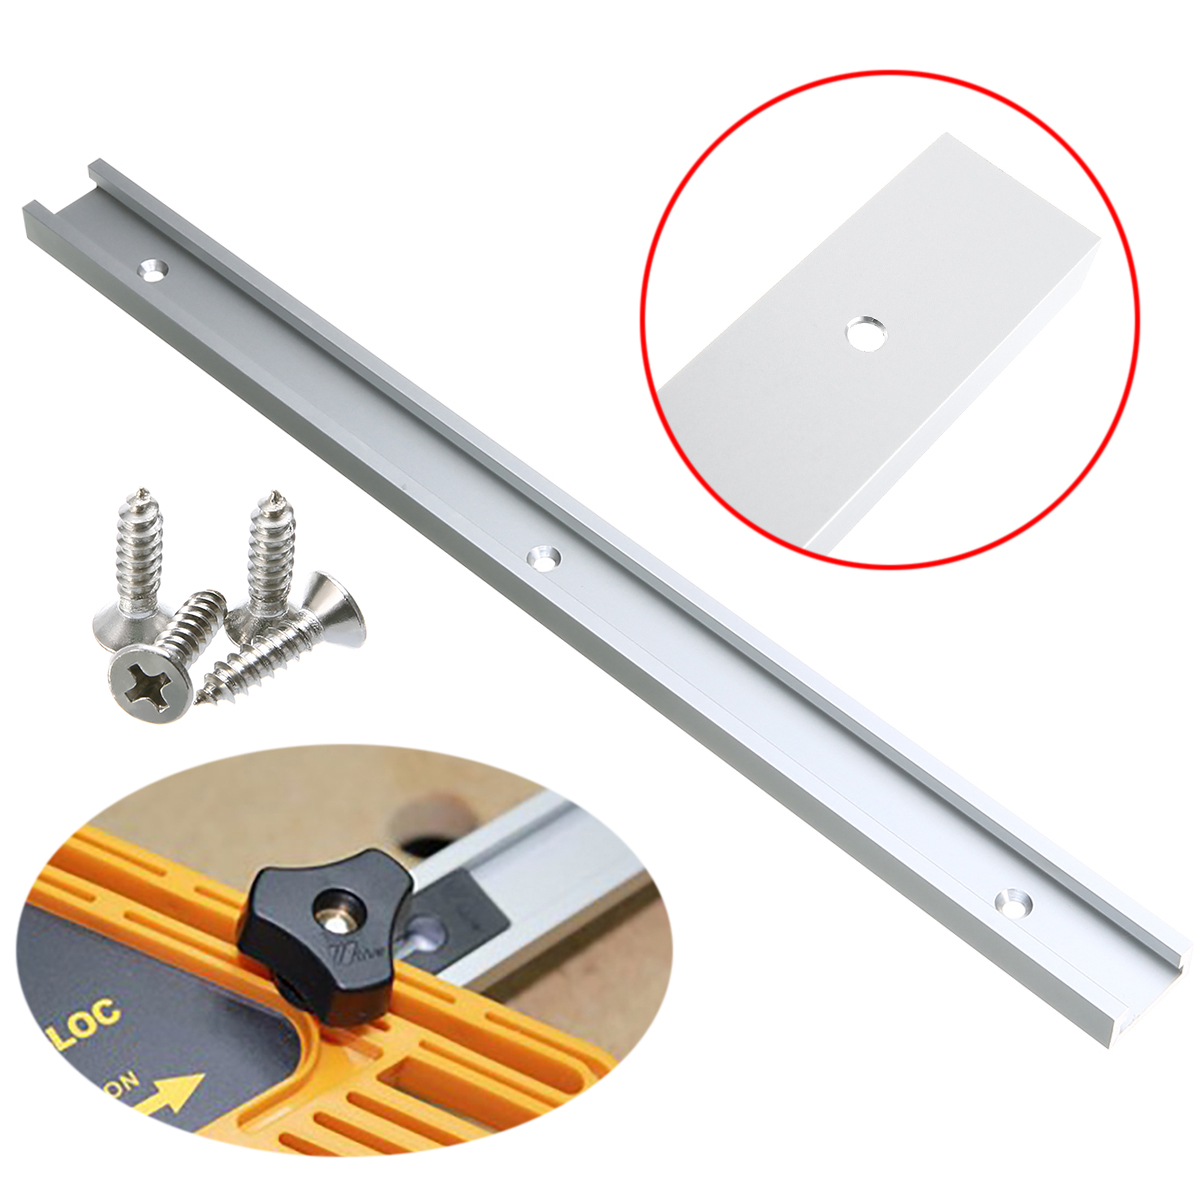 1pc 400mm Length Aluminum T-Tracks Miter Anti-corrosion Jig Fixture Slot For Drill Press Router Table Band Saw 2pcs t tracks t slot miter track jig fixture slot for router table band saw t tracks length 300 400 600 800mm kf713